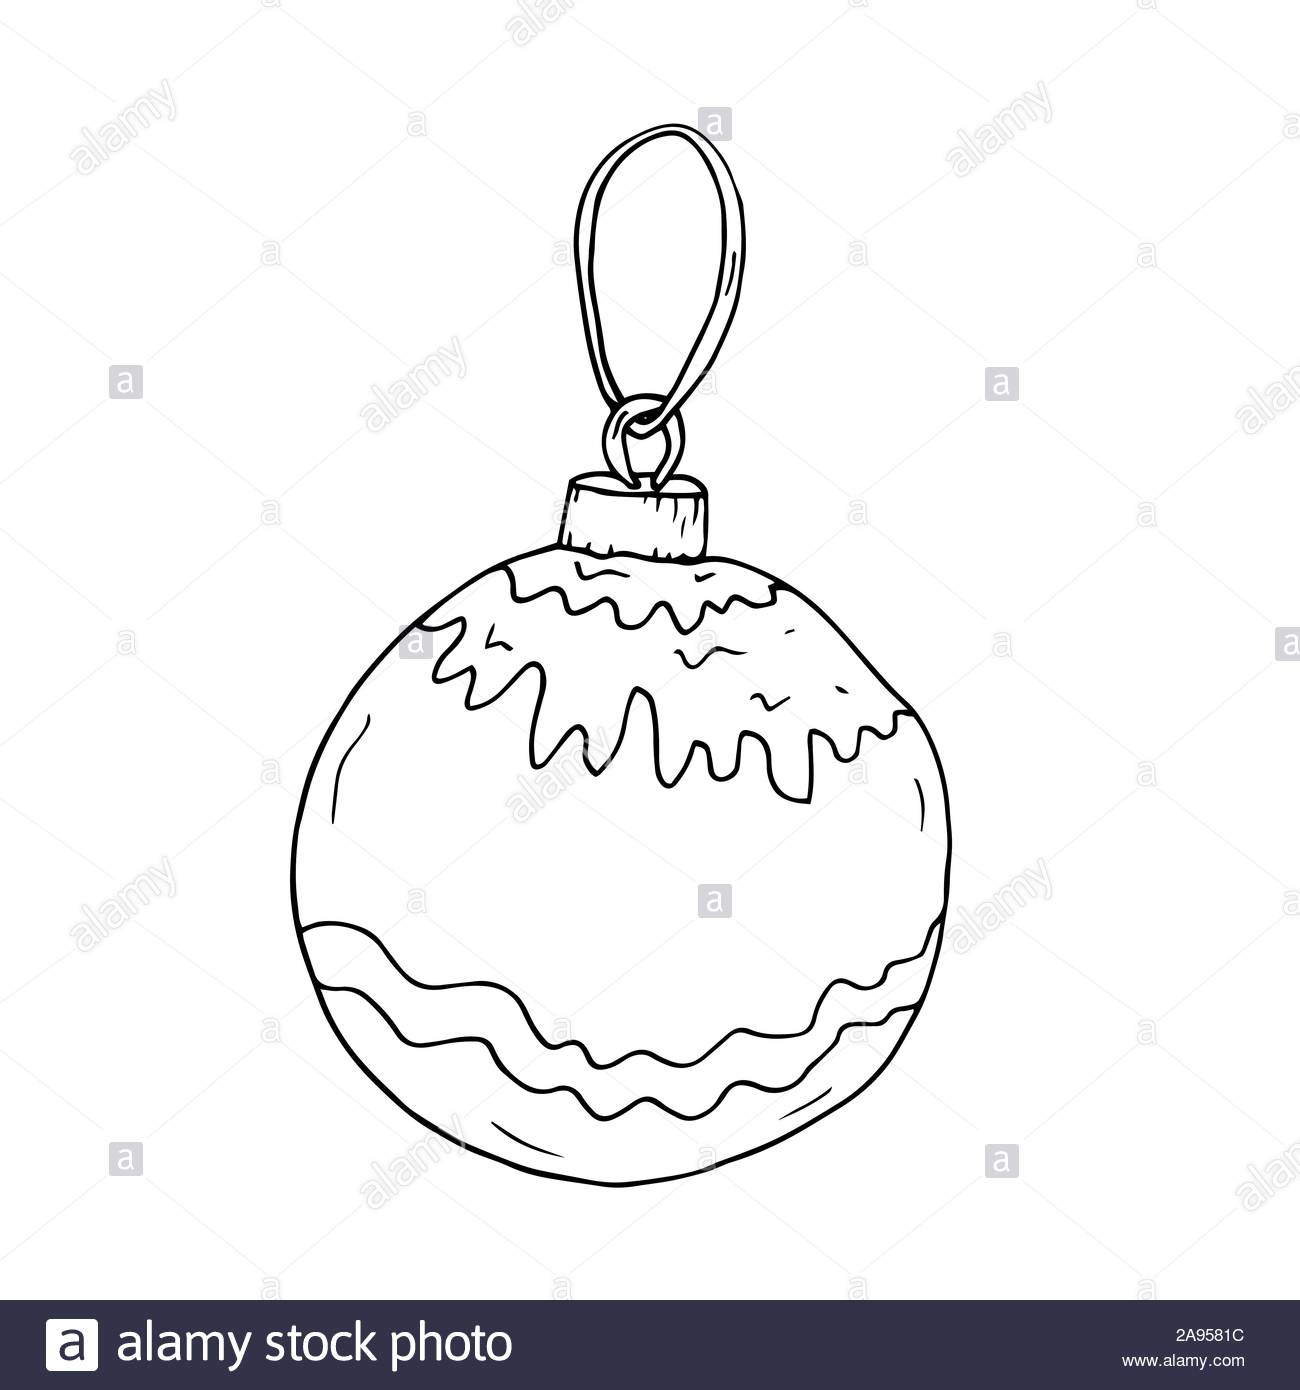 Element for for decoration holiday cards and invitations to the winter holidays. Isolated on white. Stock Vector